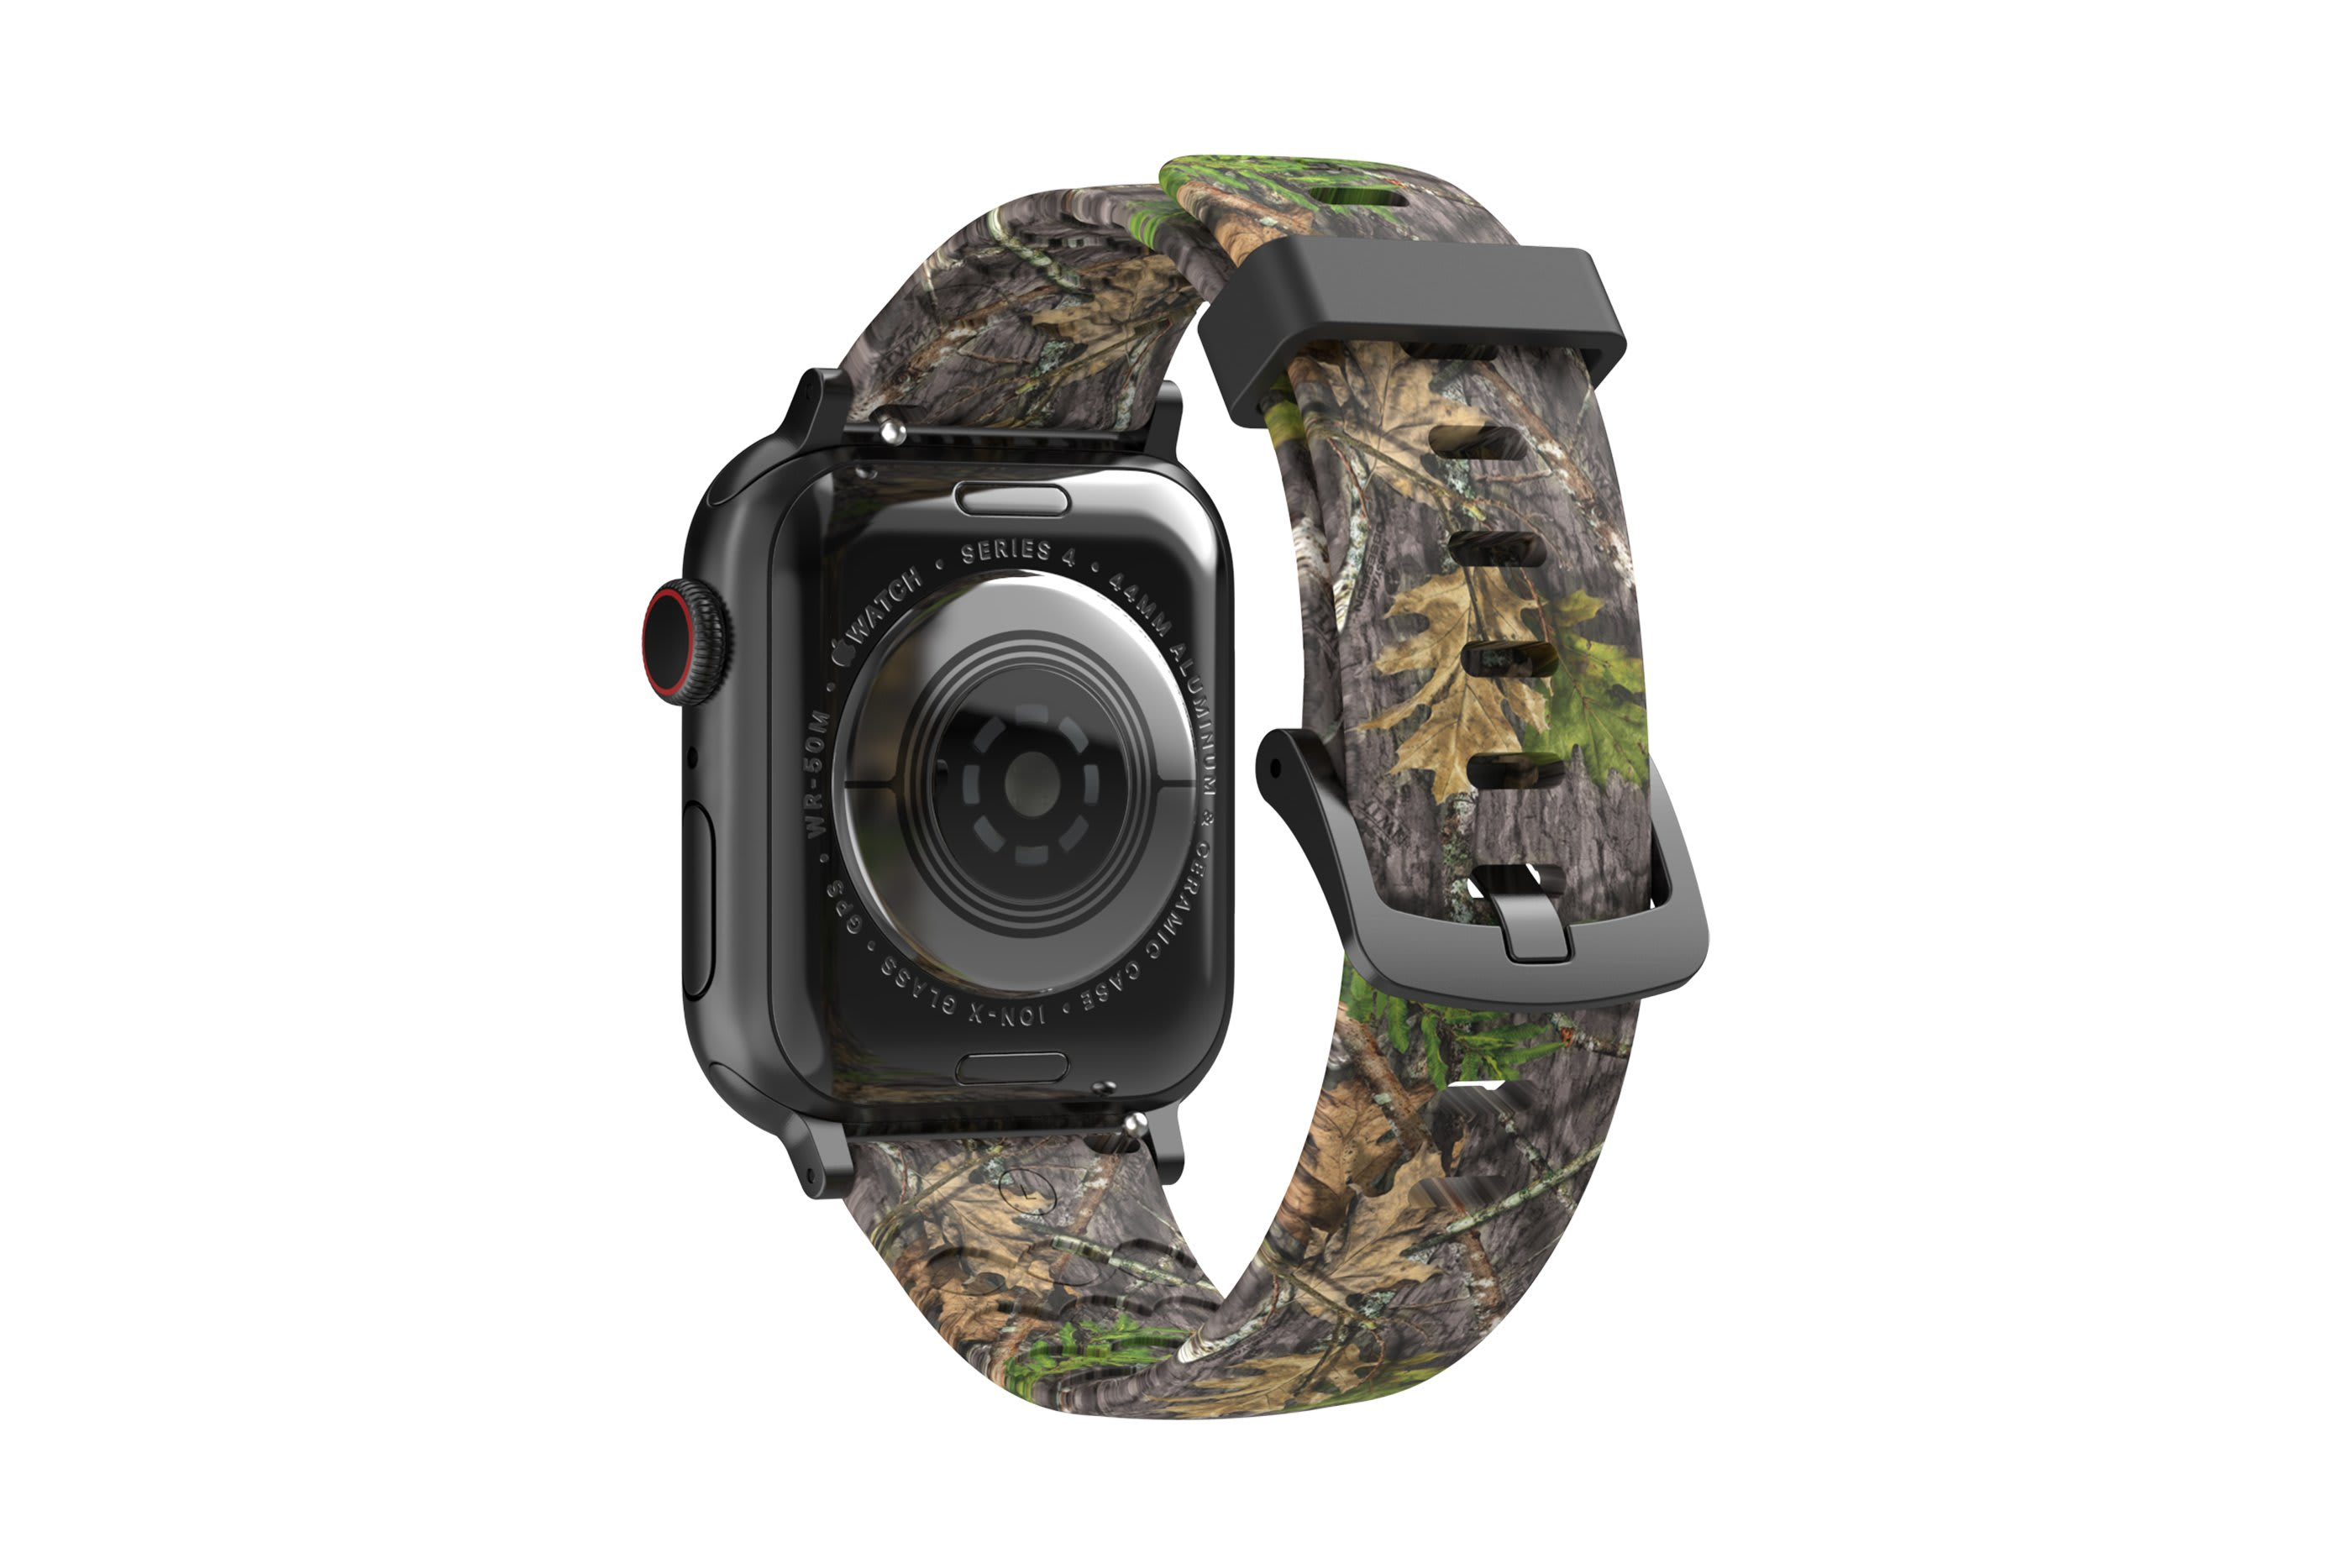 NWTF Mossy Oak Obsession  apple watch band with gray hardware viewed from rear